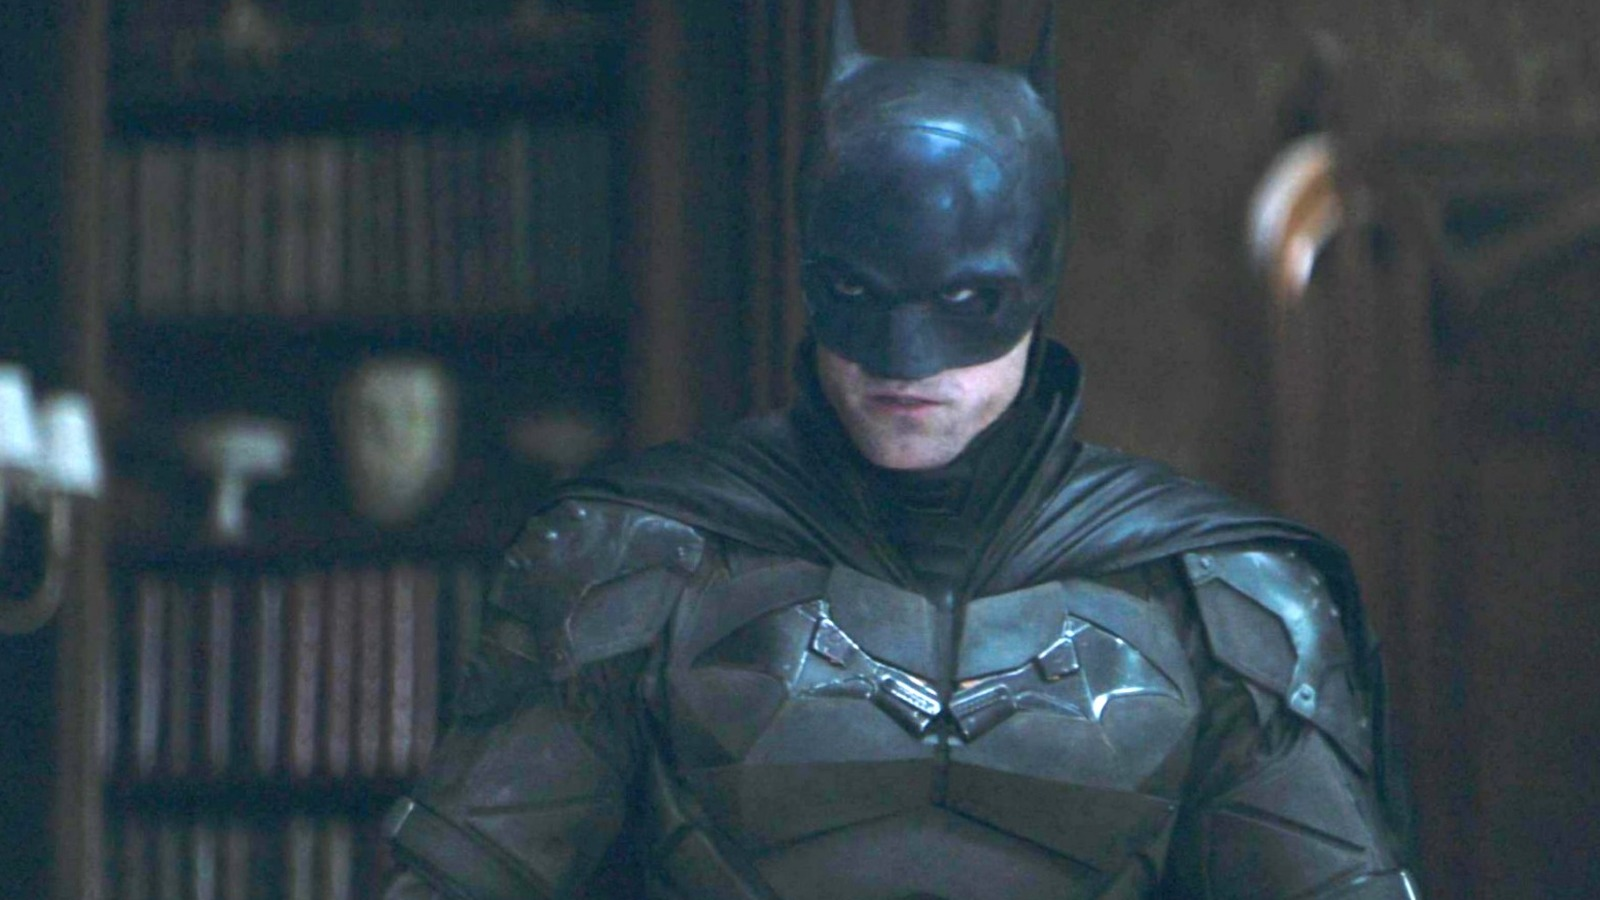 The Batman Full Movie Leaked Online to Download in hd